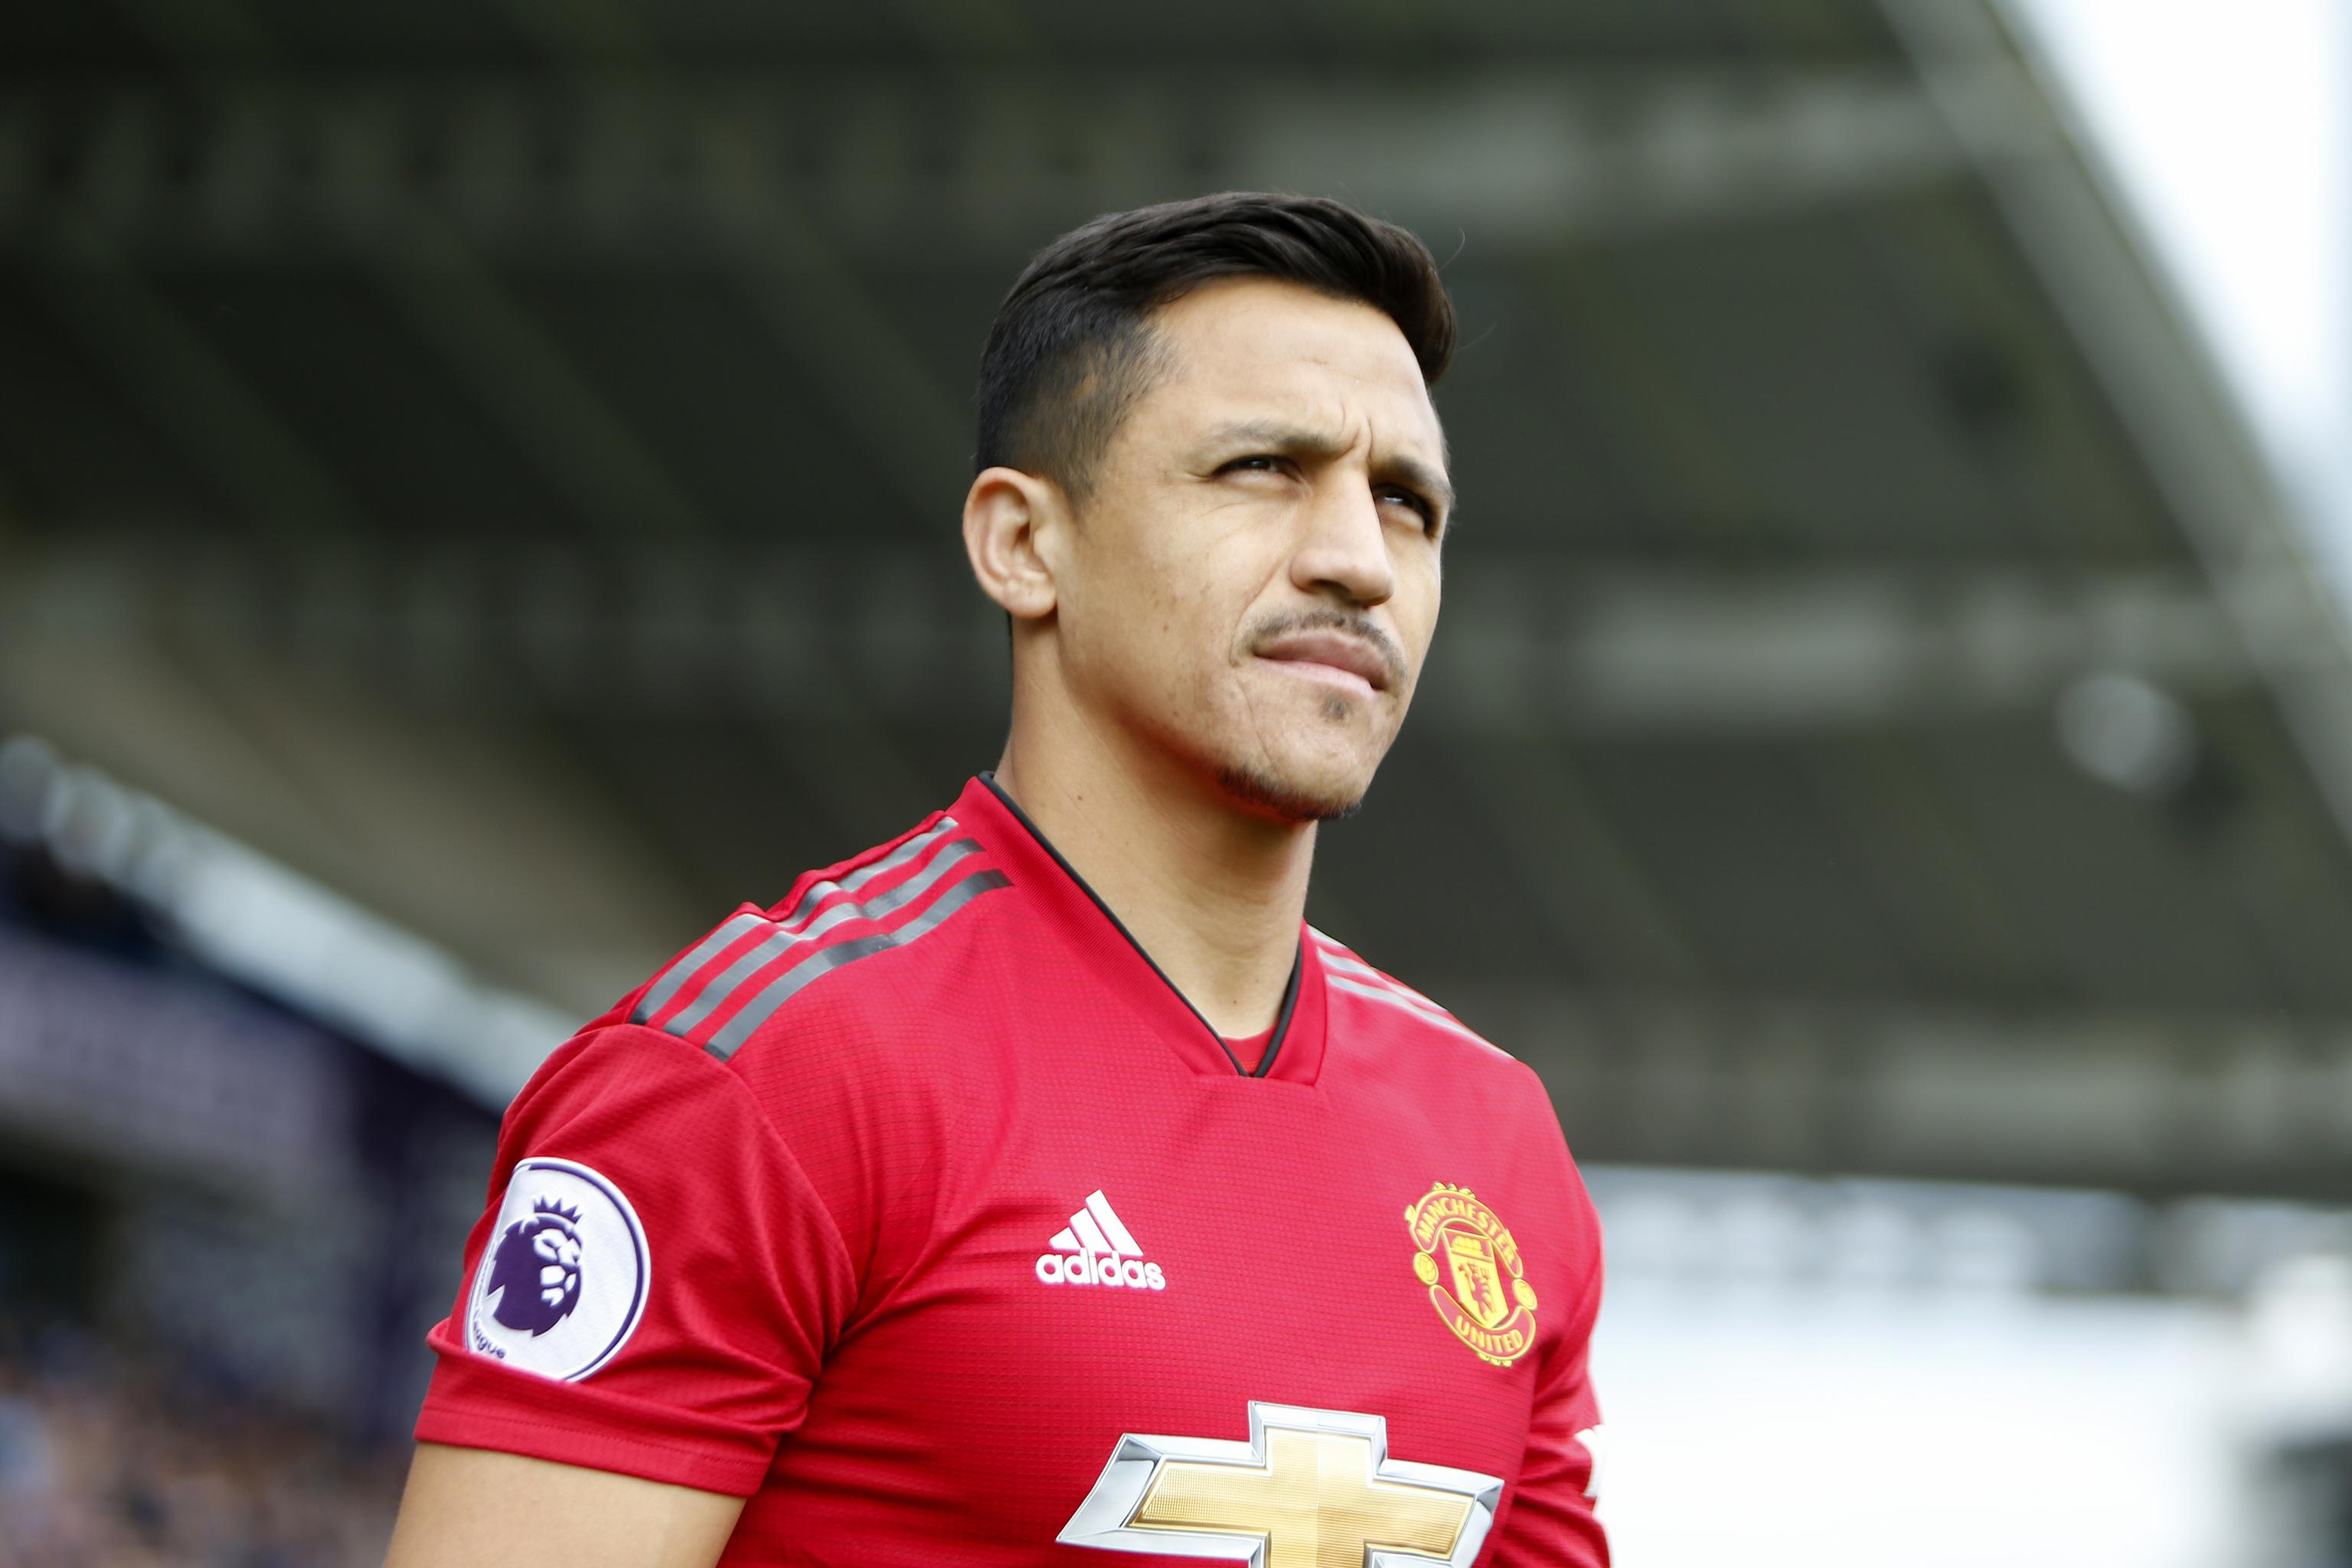 timeless design 7a675 b093f Alexis Sanchez Posts Apology to Manchester United Fans After ...